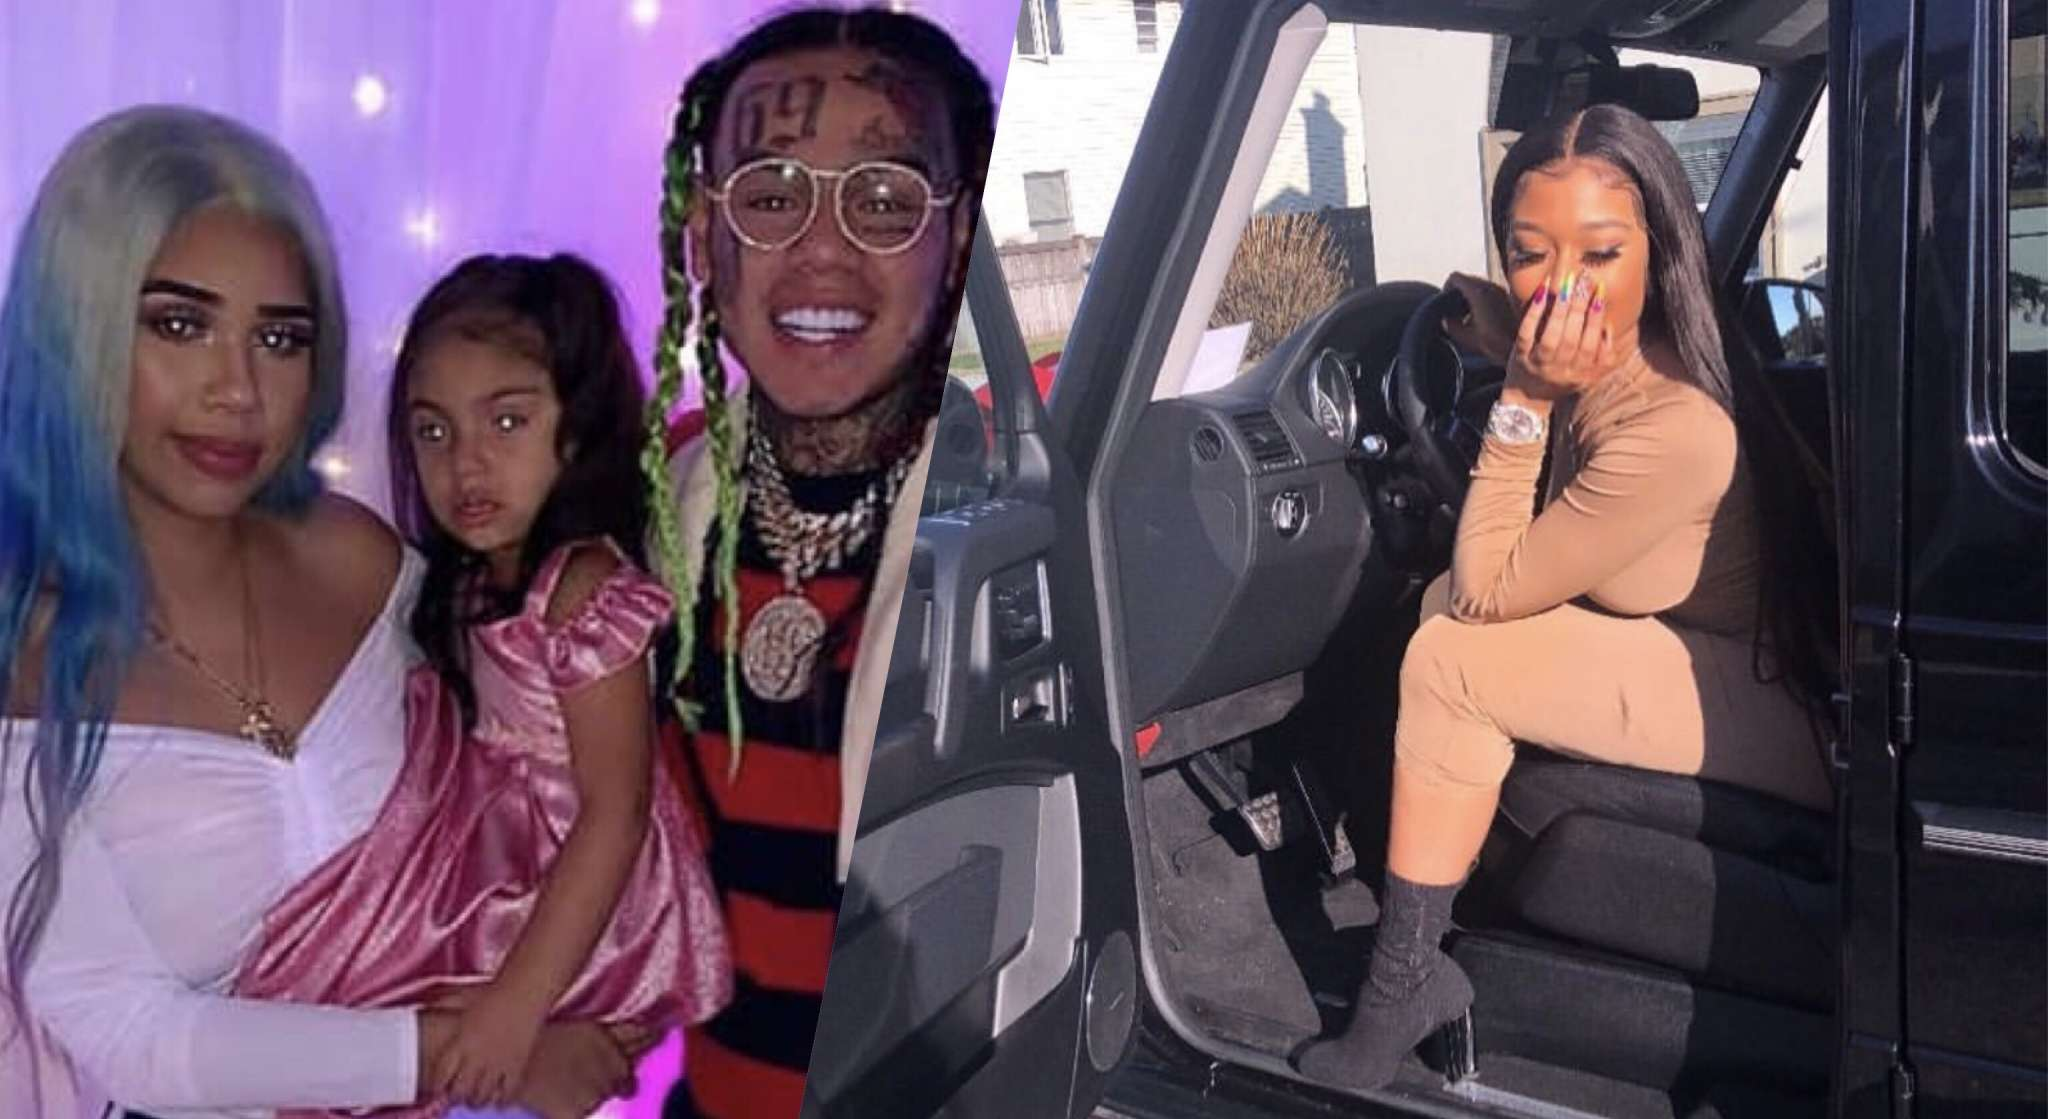 Tekashi 69's Baby Mama Sara Says His Snitching Puts Her Family At Risk And The Rapper's GF, Jade Slams 'Washed Up' Rappers Such As Snoop Dogg Who Accuse 69 - Watch The Video